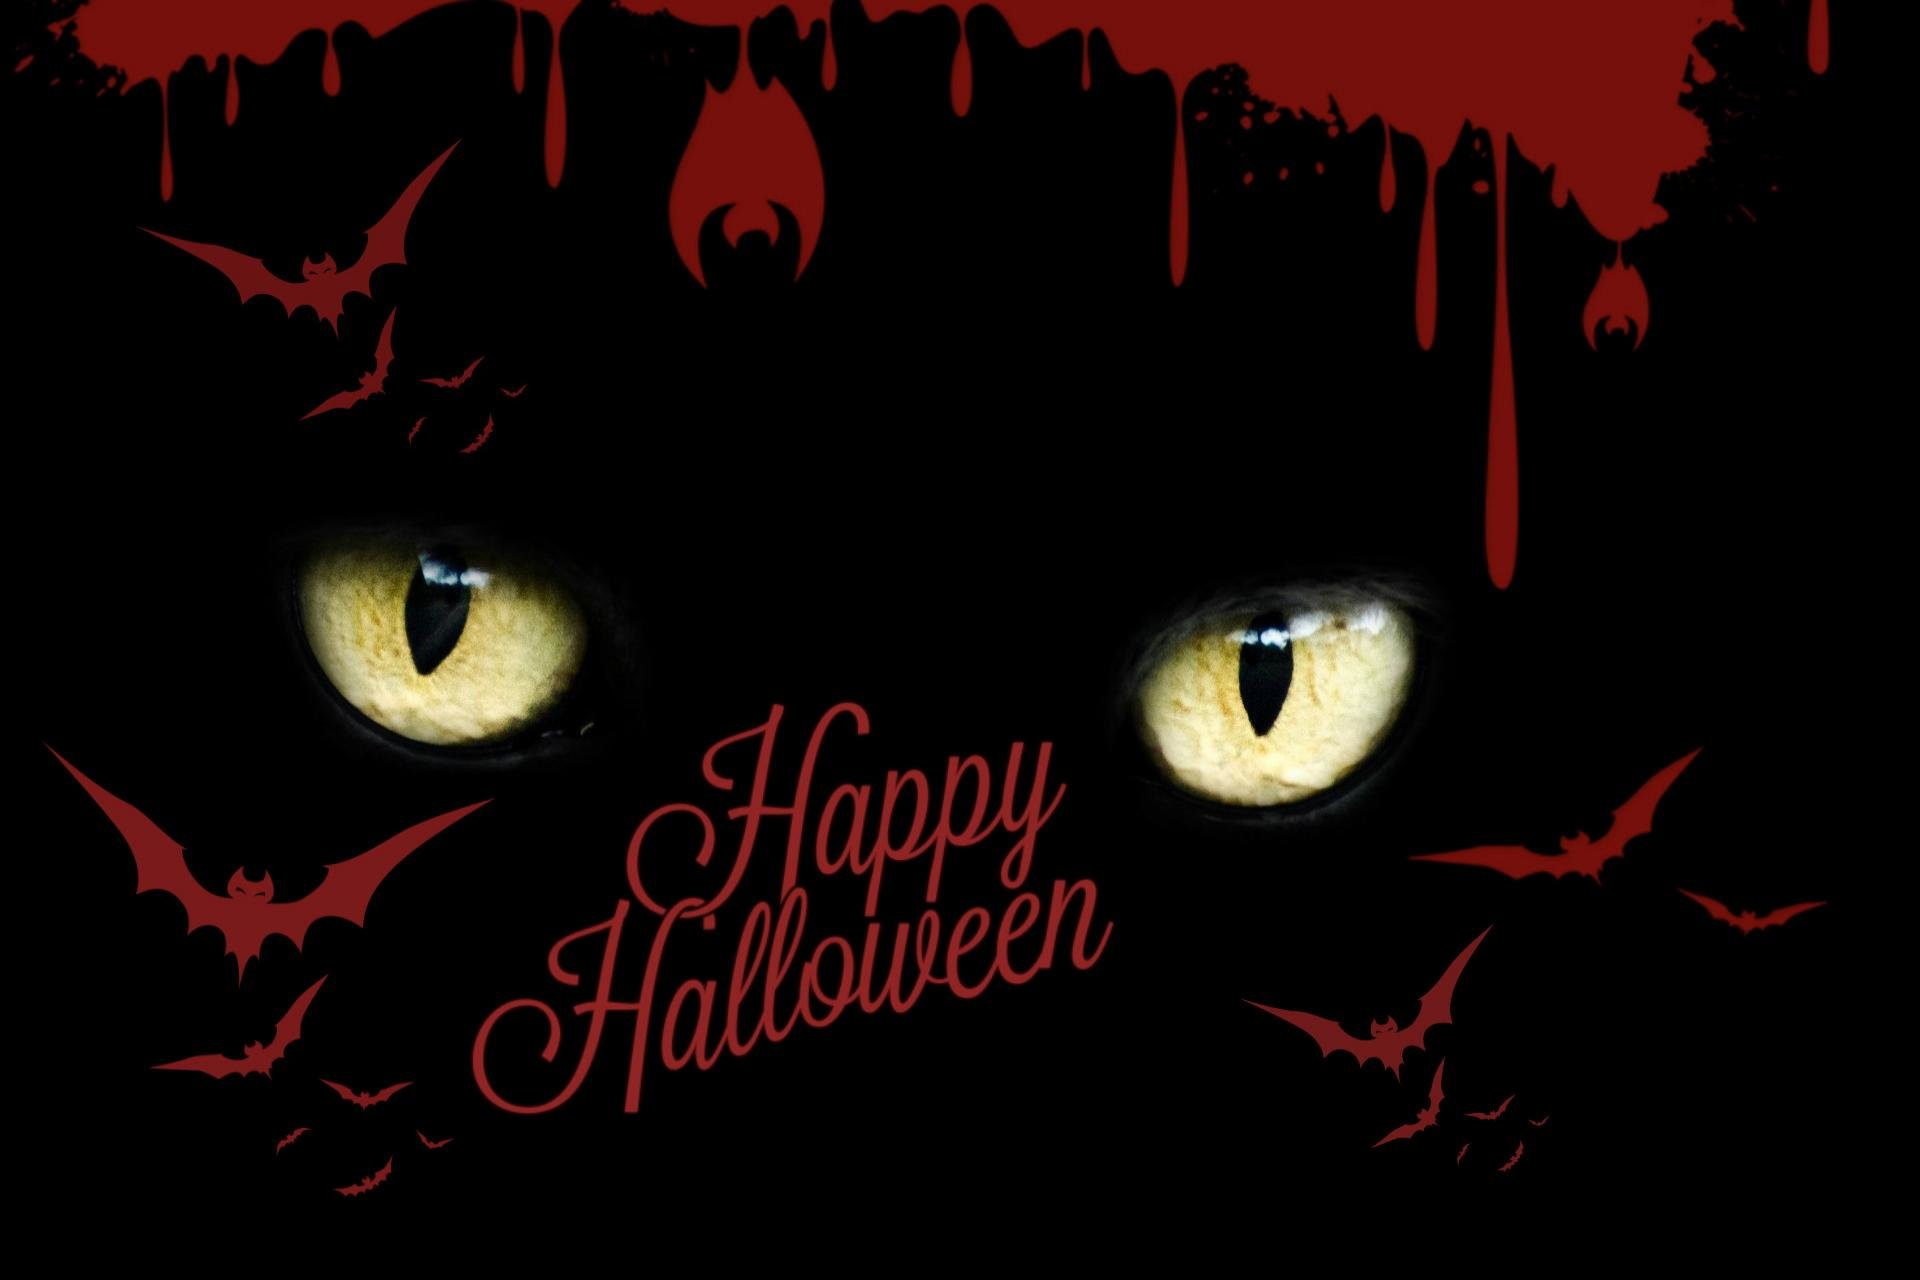 free download happy halloween wallpaper id:402242 hd 1920x1280 for